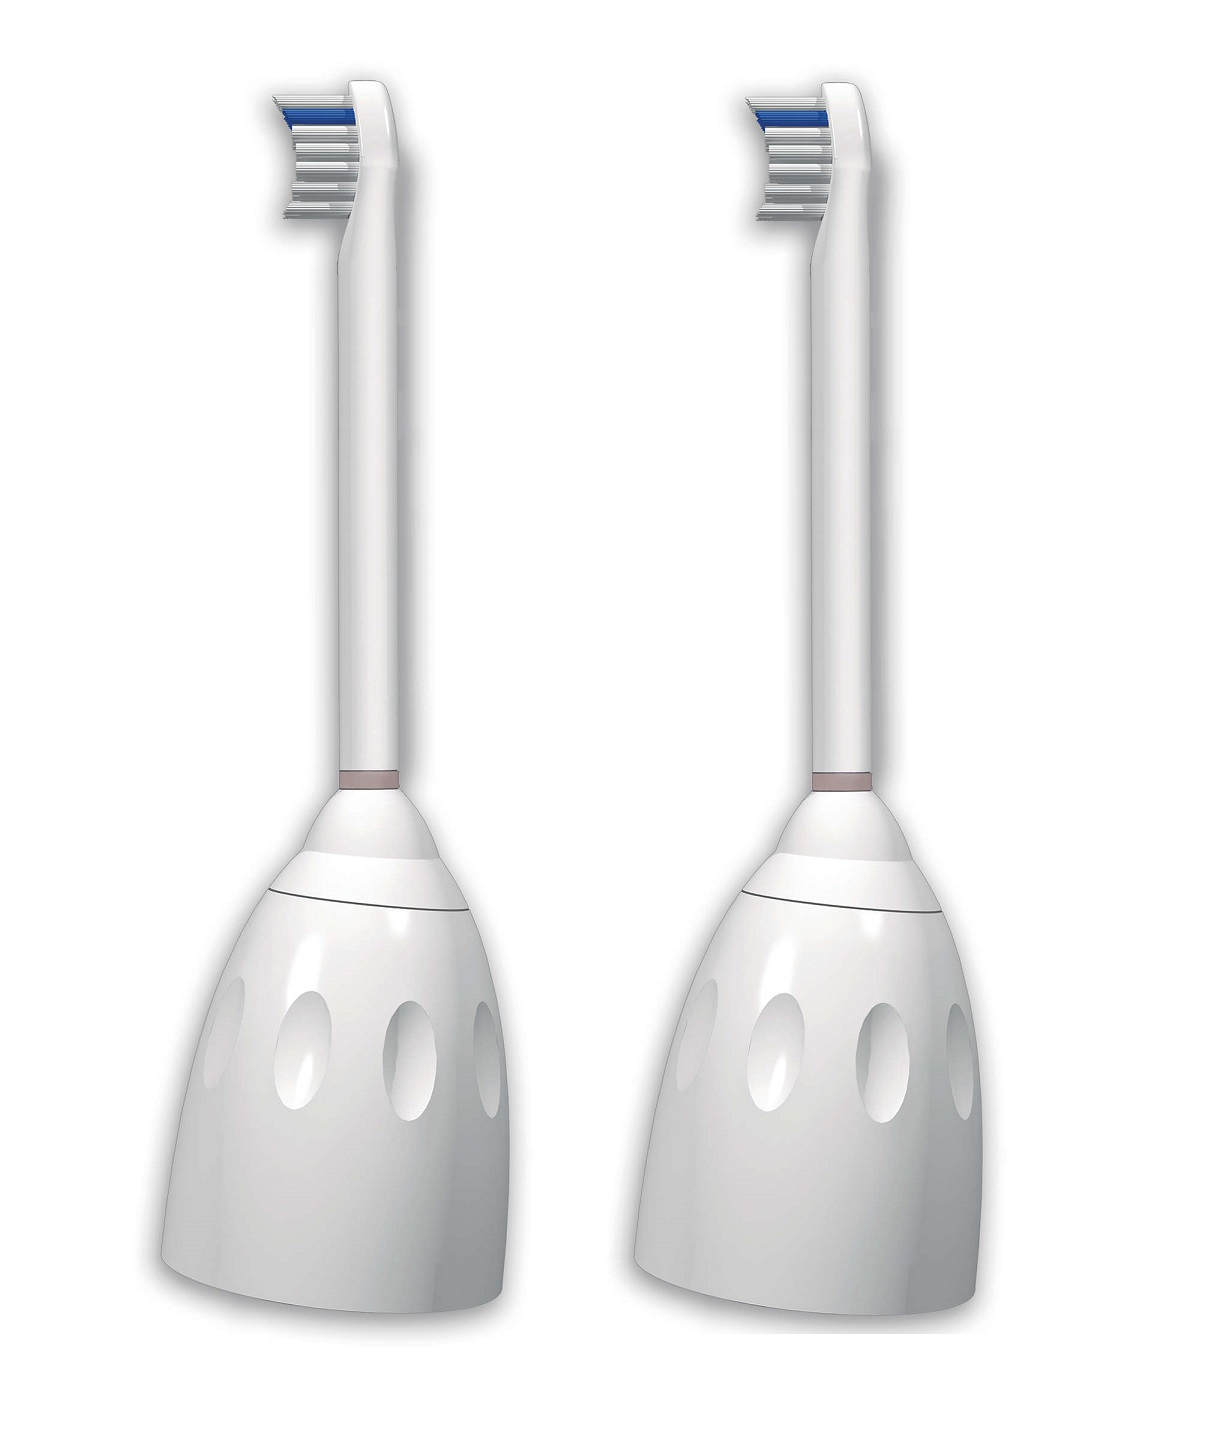 Philips Sonicare Opzetborstels e-Series Mini HX7012/07